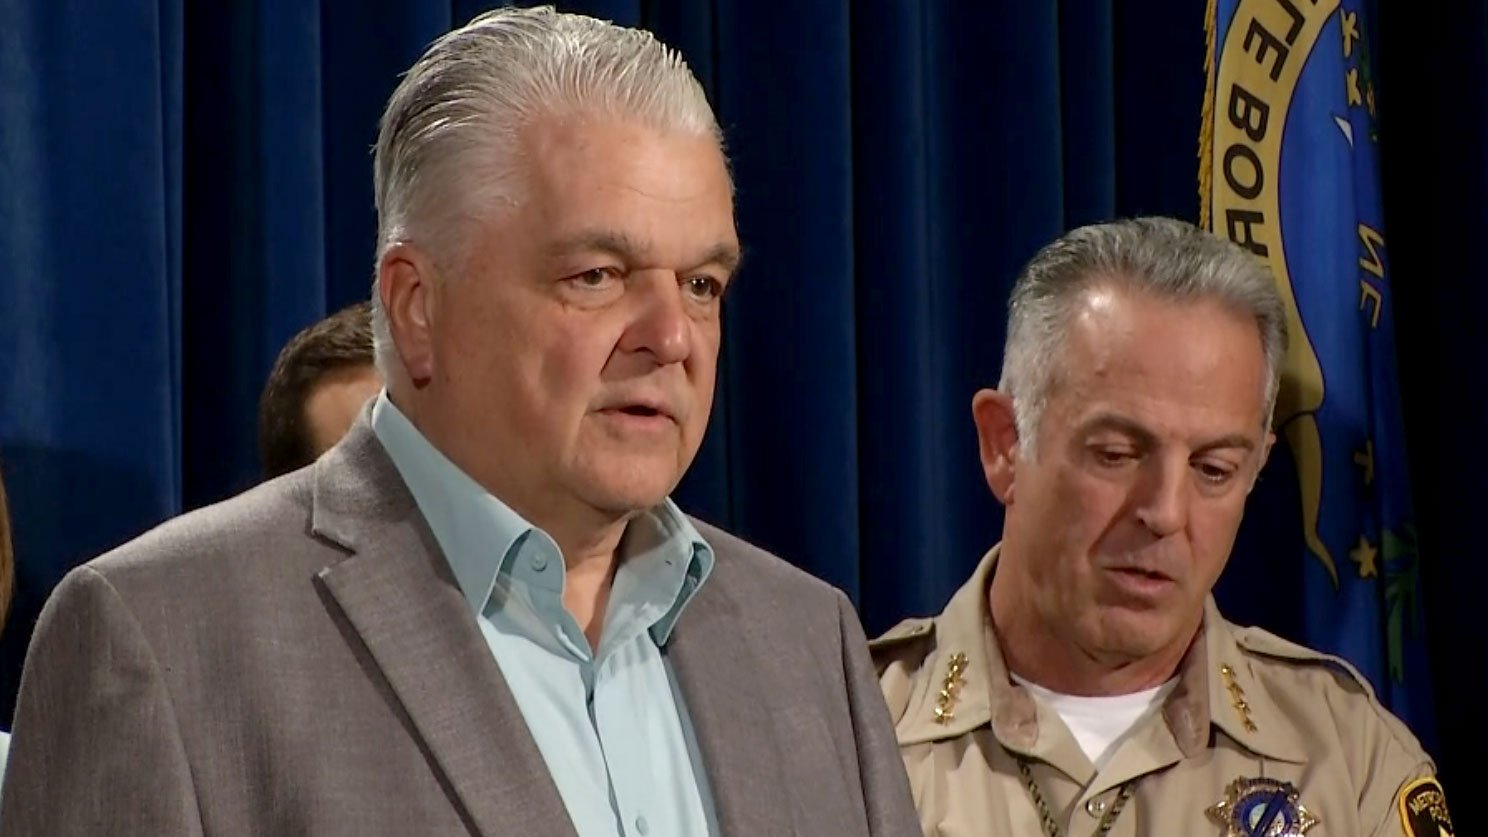 Steve Sisolak speaks during a press conference on Oct. 3, 2017. (FOX5)